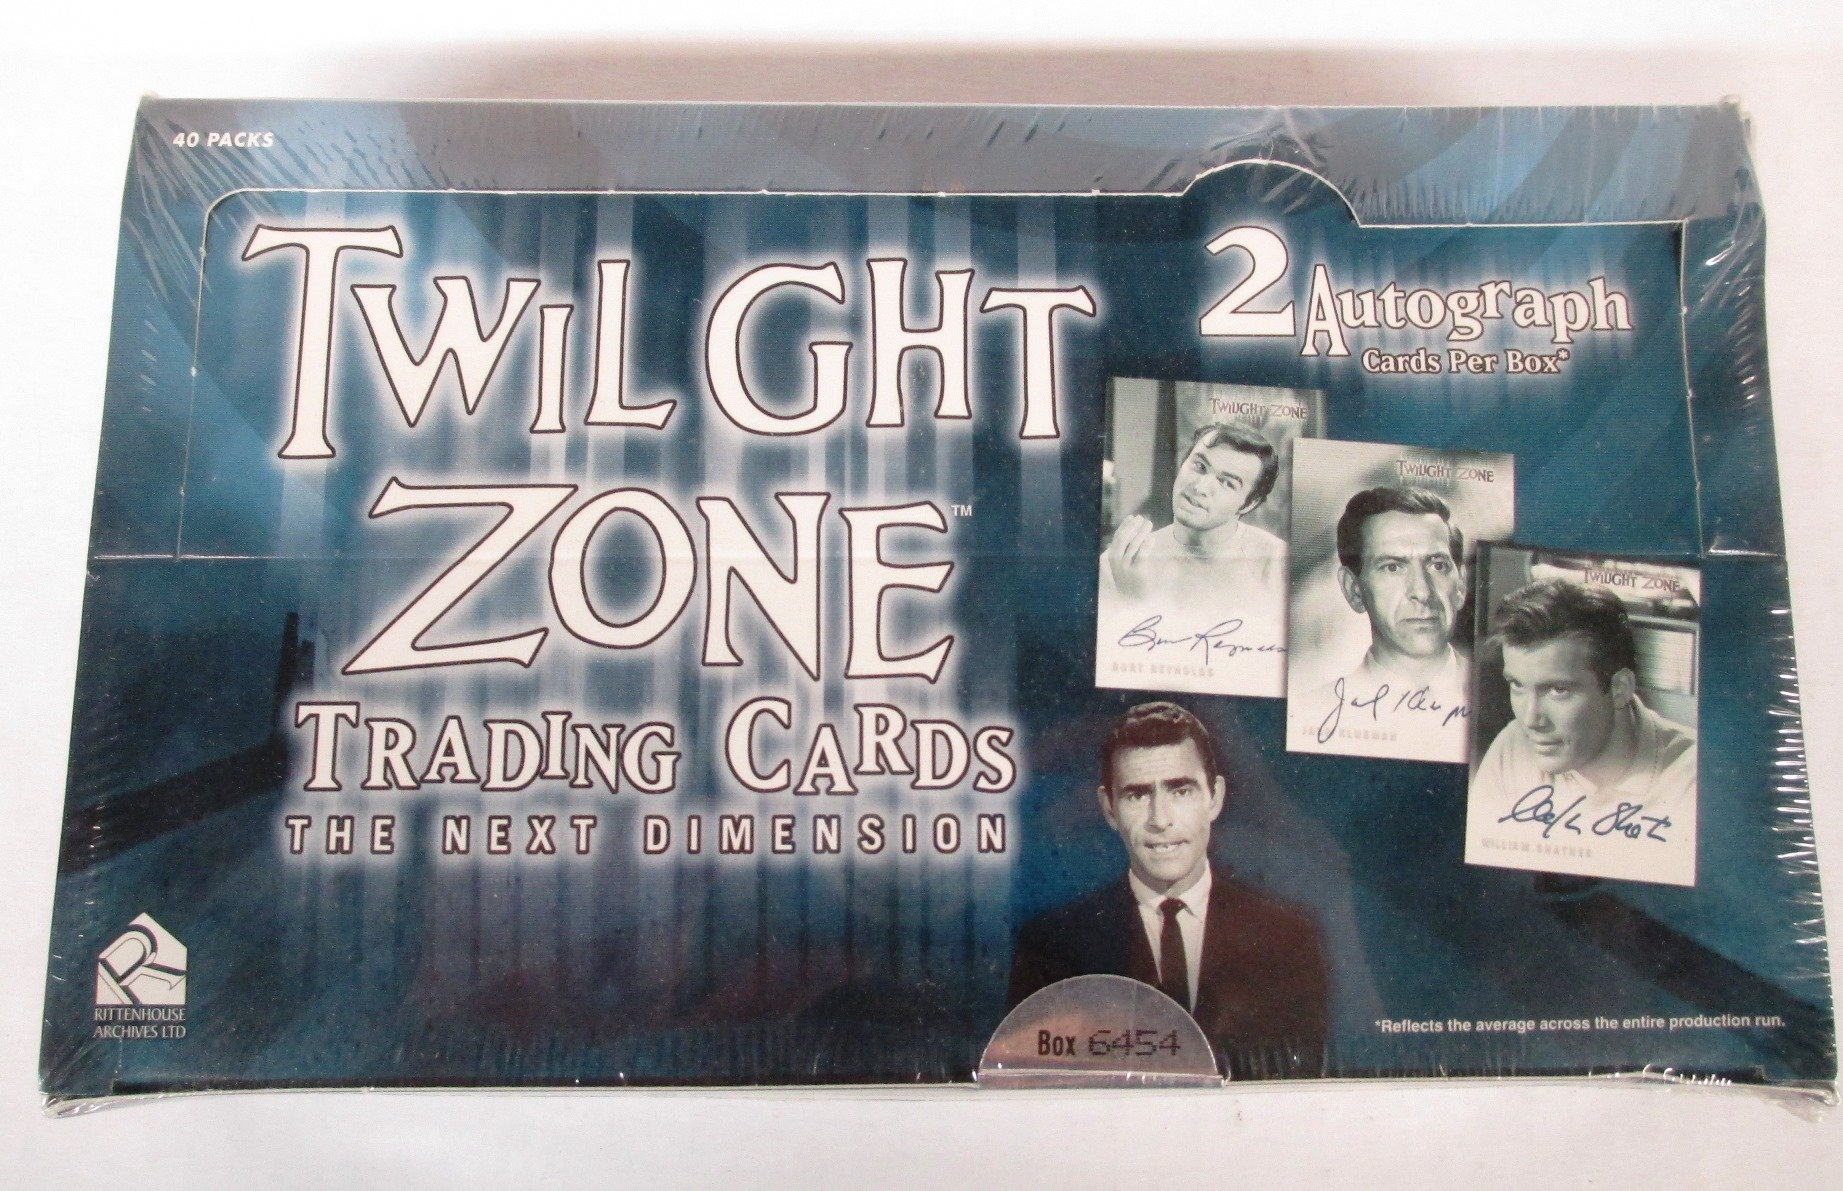 The Twilight Zone The Next Dimension Series 2 Trading Cards Box Set with Autograph card by Twilight Zone